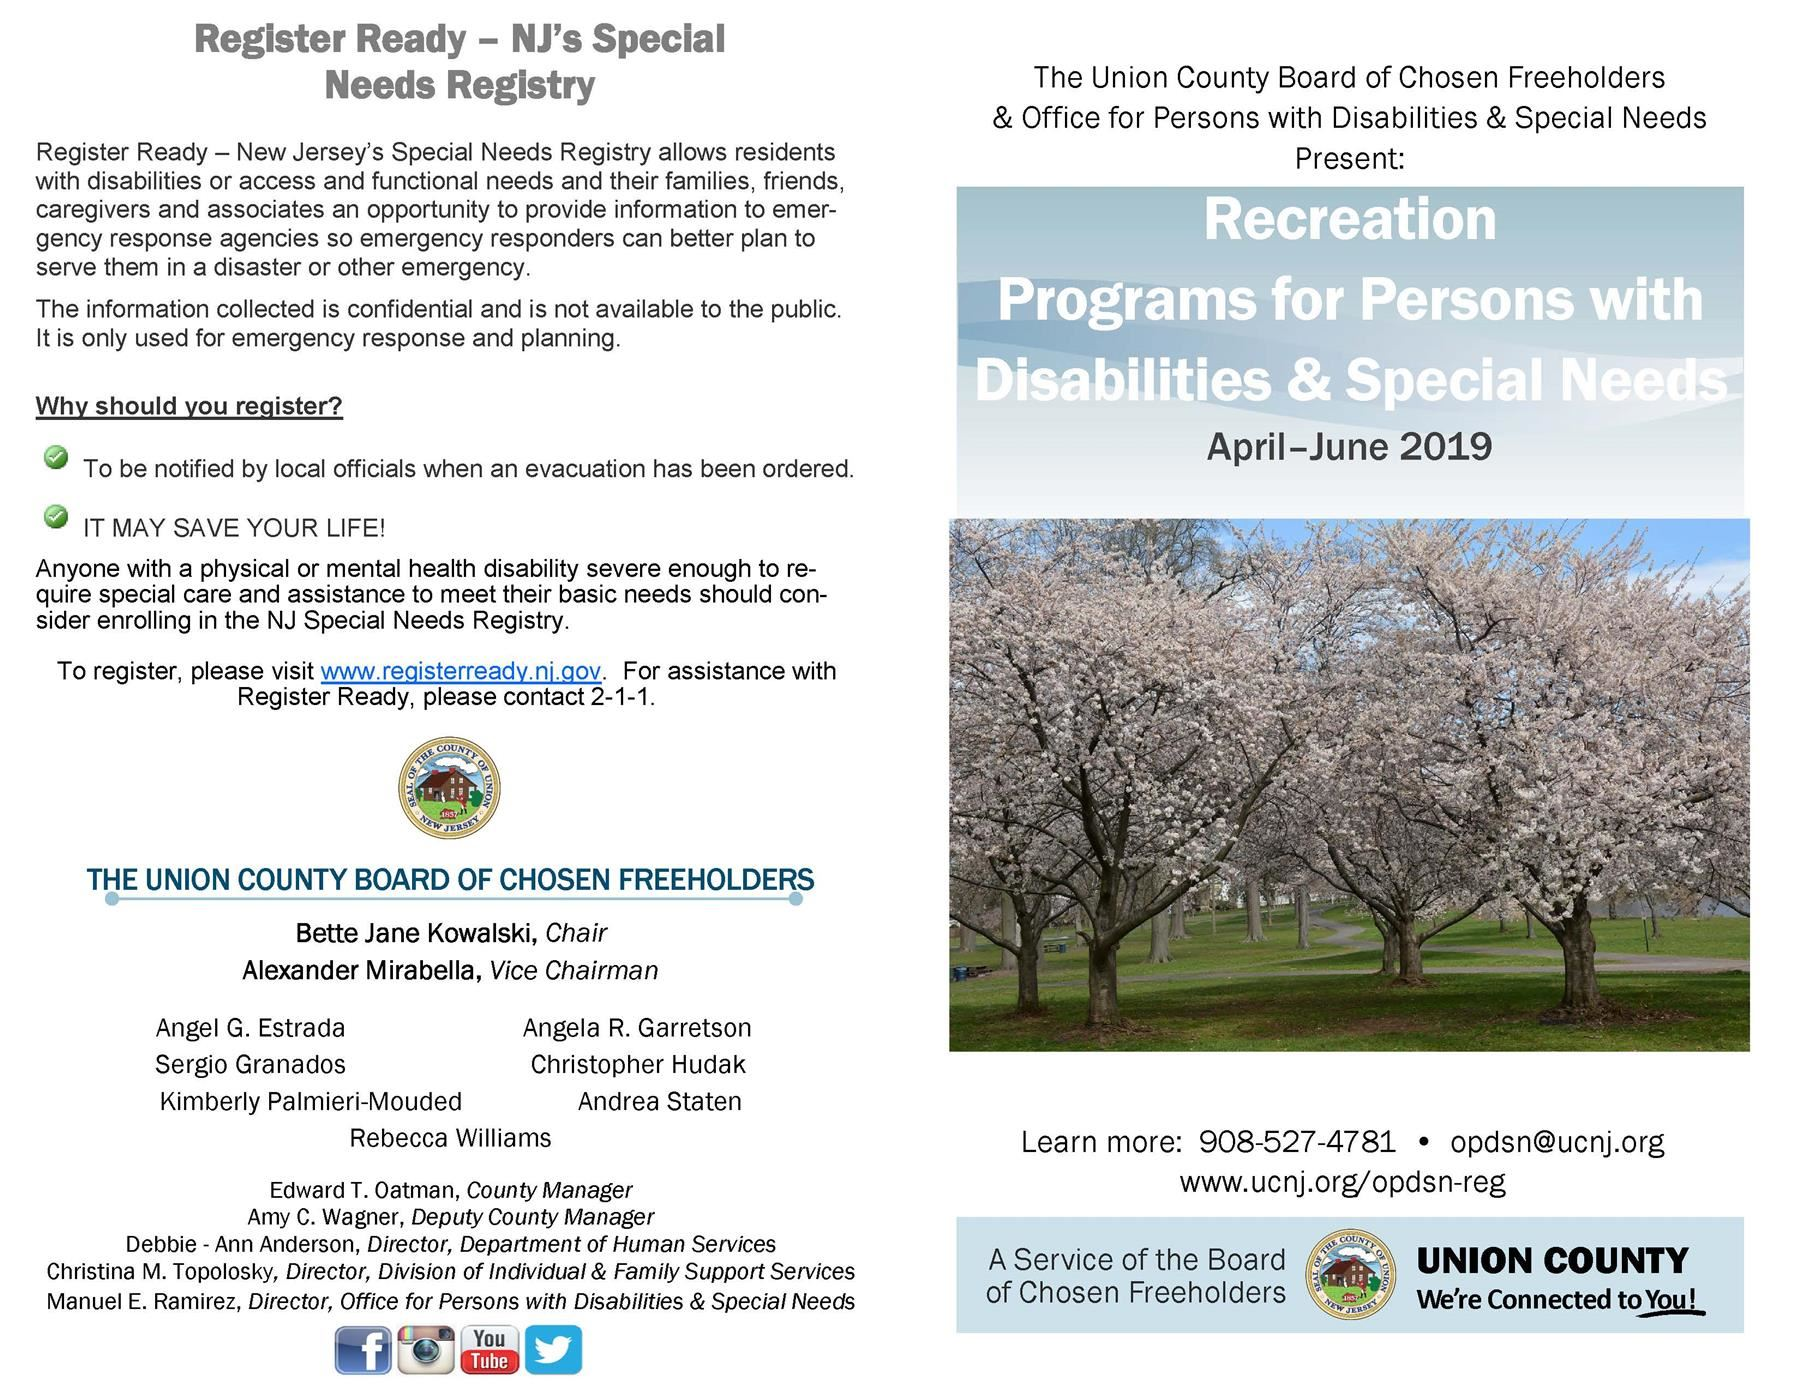 Recreation Programs for Persons with Disabilities & Special Needs April–June 2019